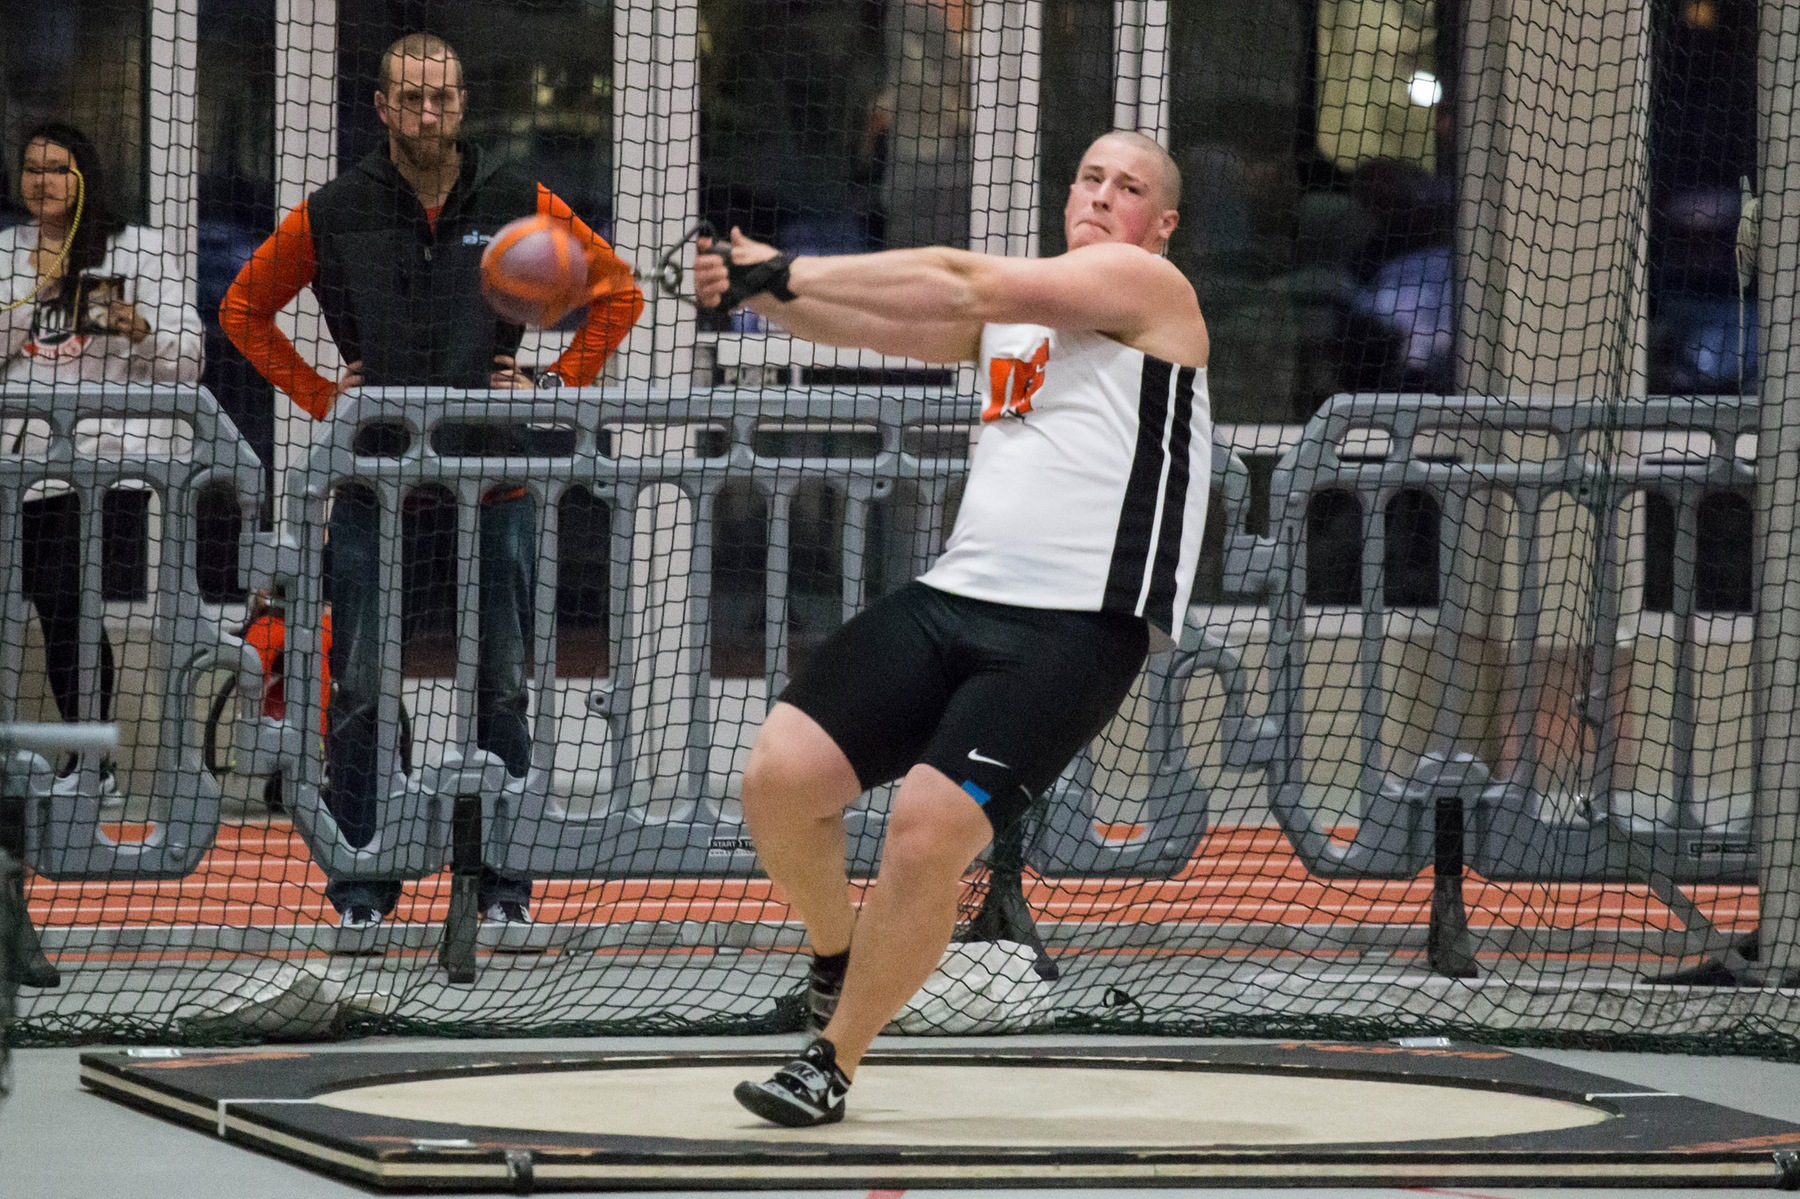 Austin Combs Wins National Title in Weight Throw